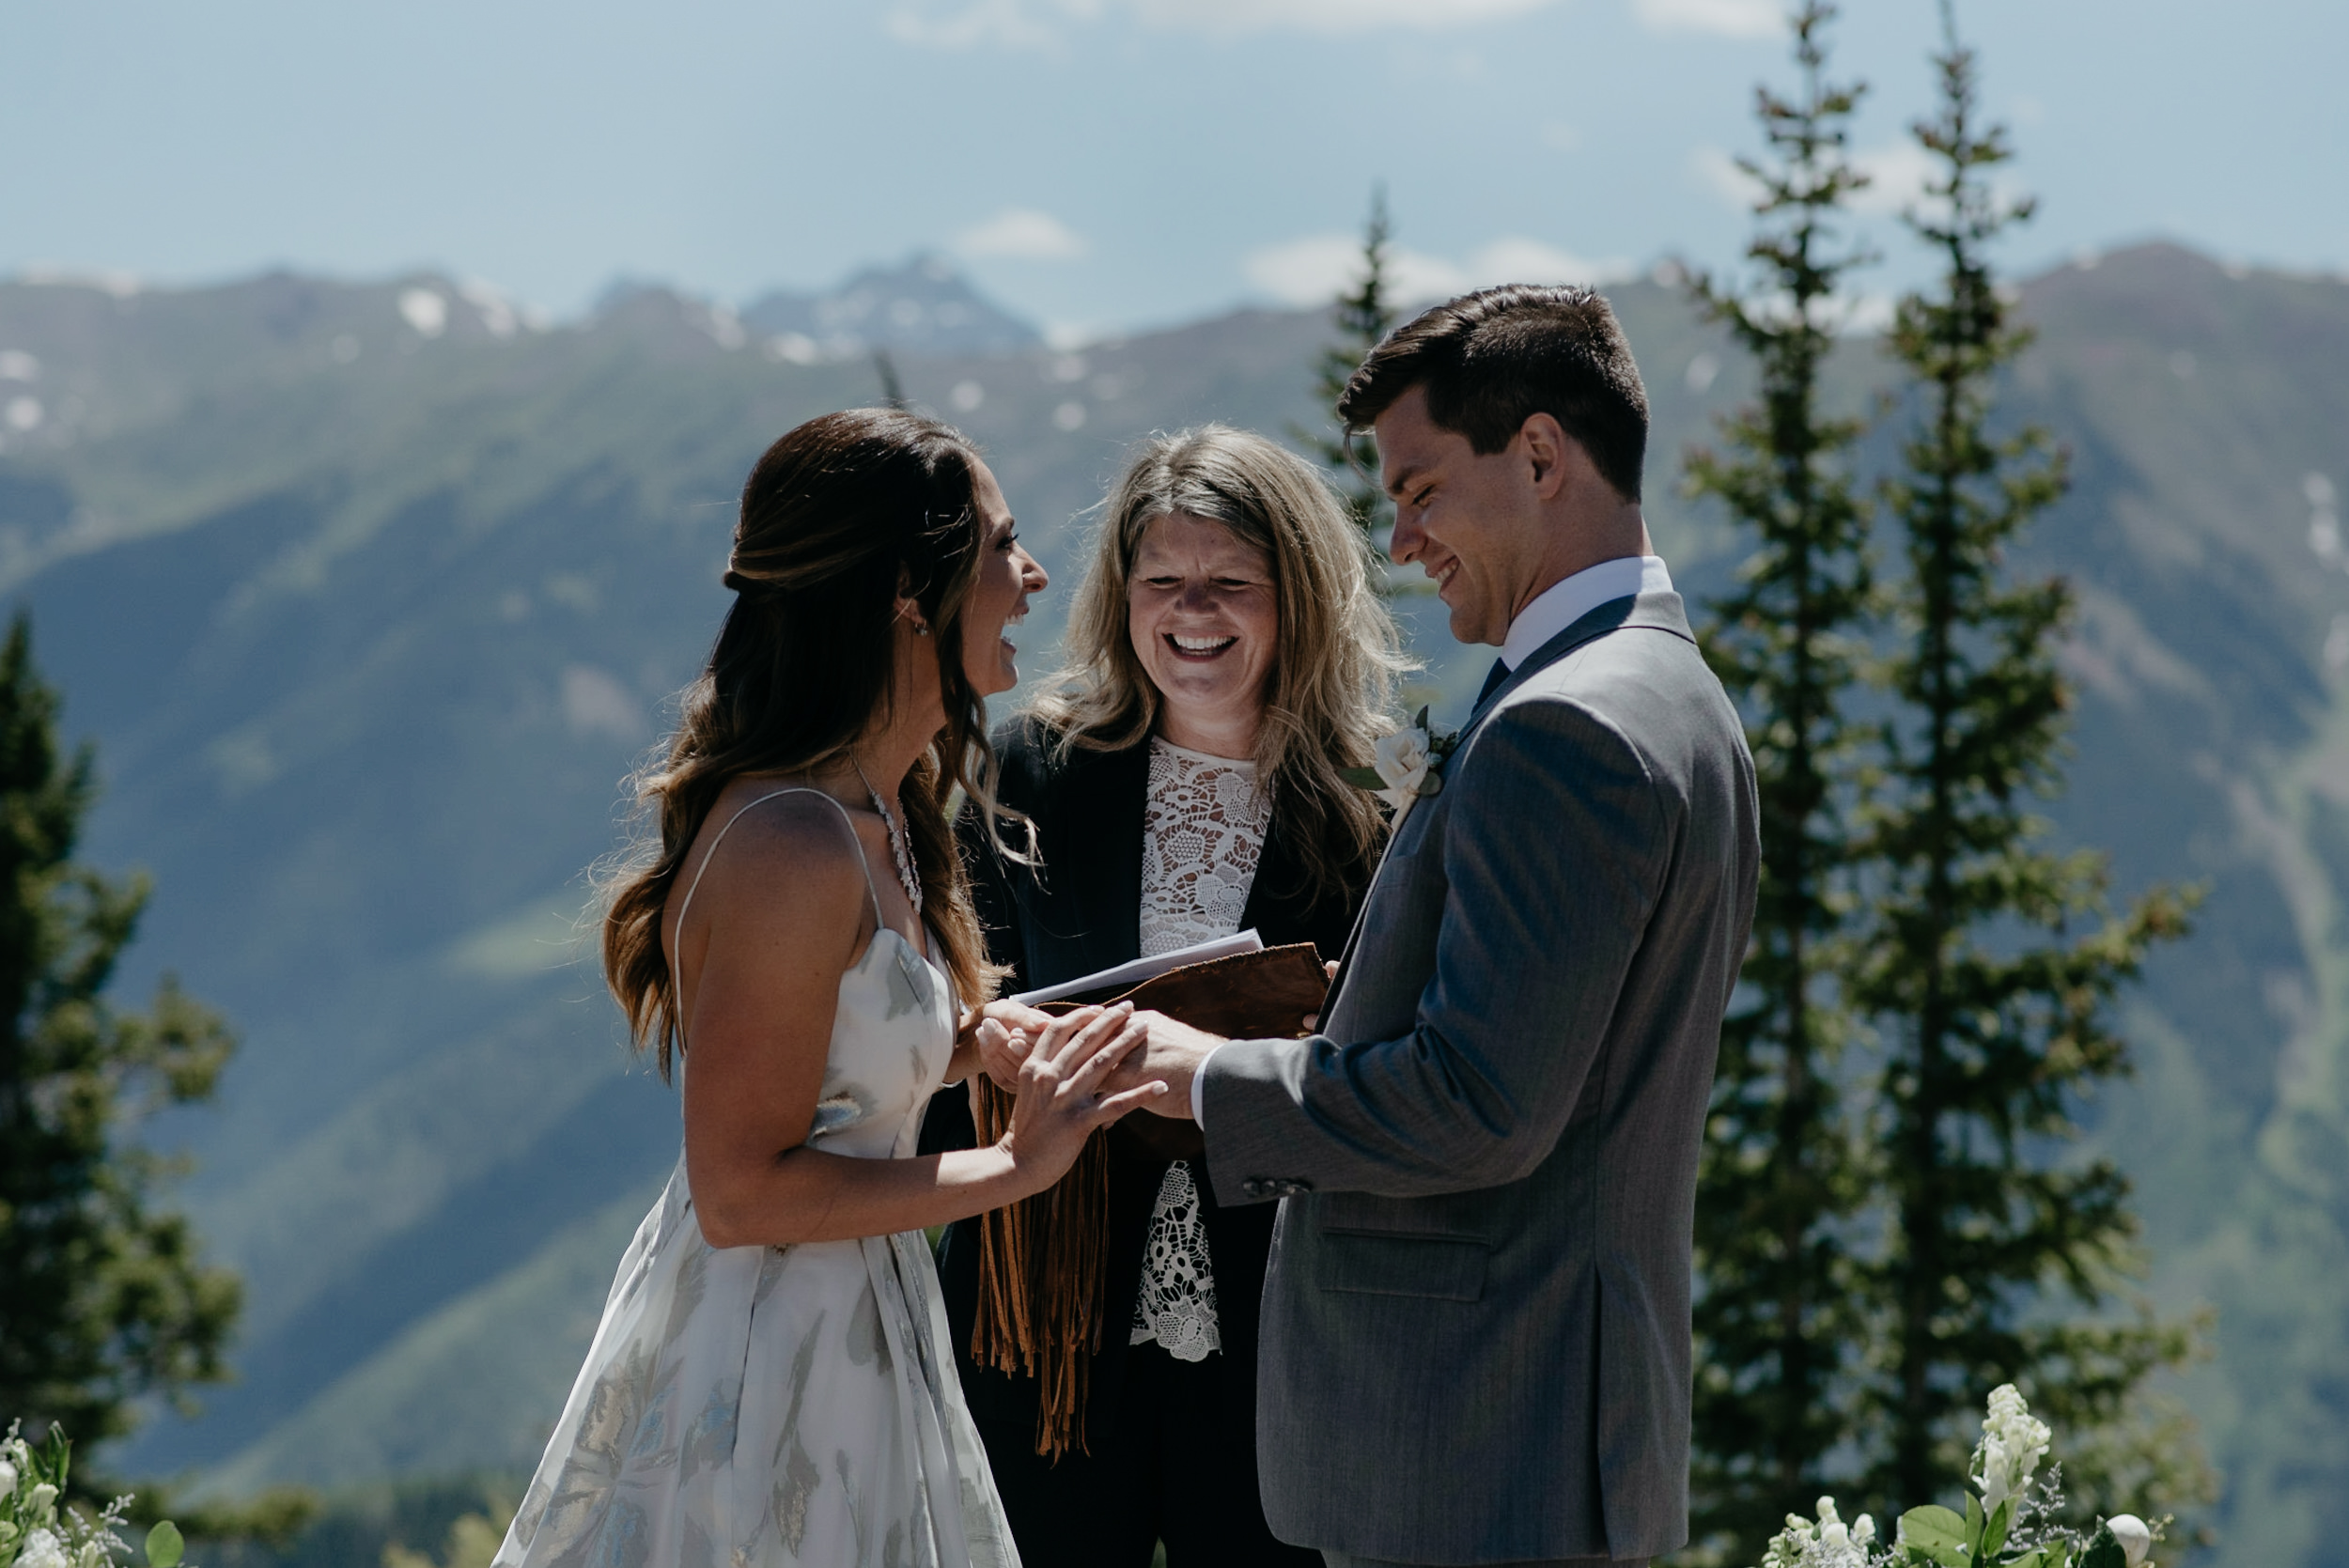 Intimate wedding at The Little Nell in Aspen, Colorado.